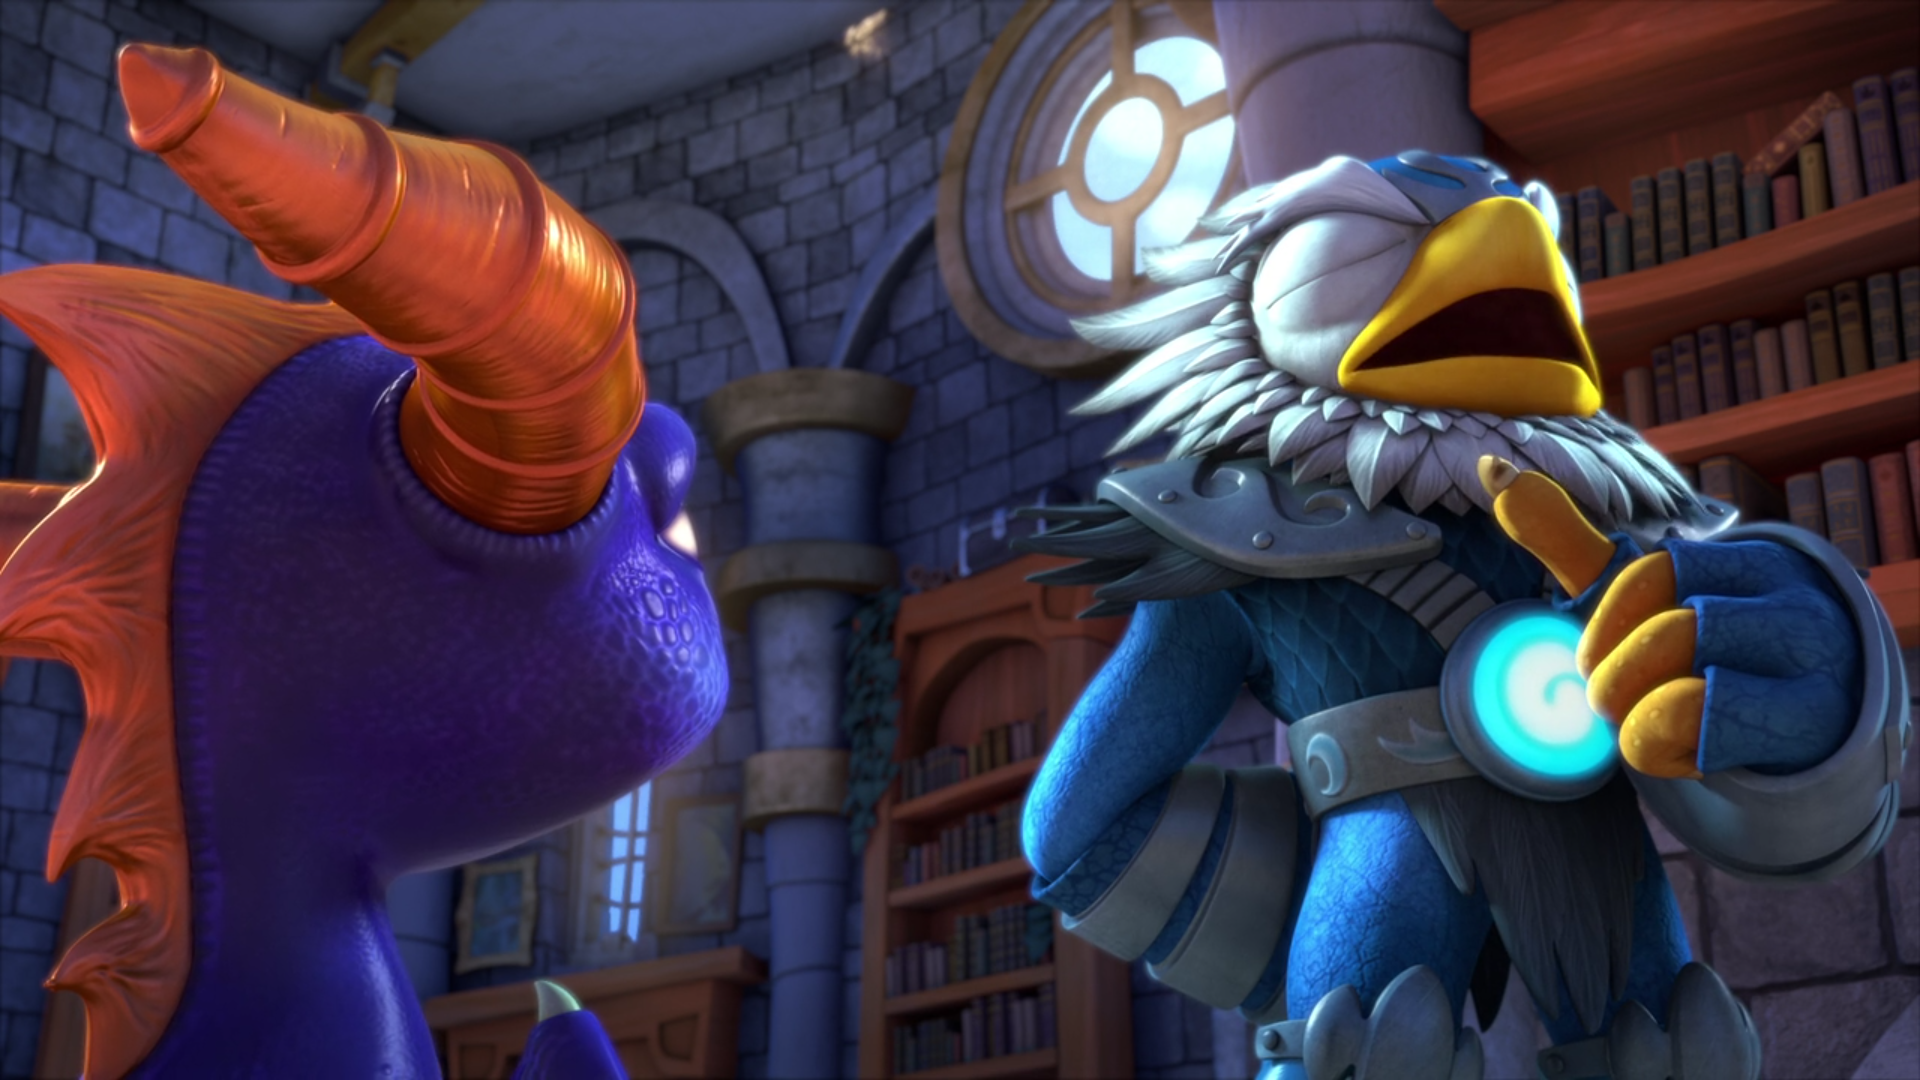 Spyro The Dragon images Epic moment of heroism HD fond dcran and 1920x1080